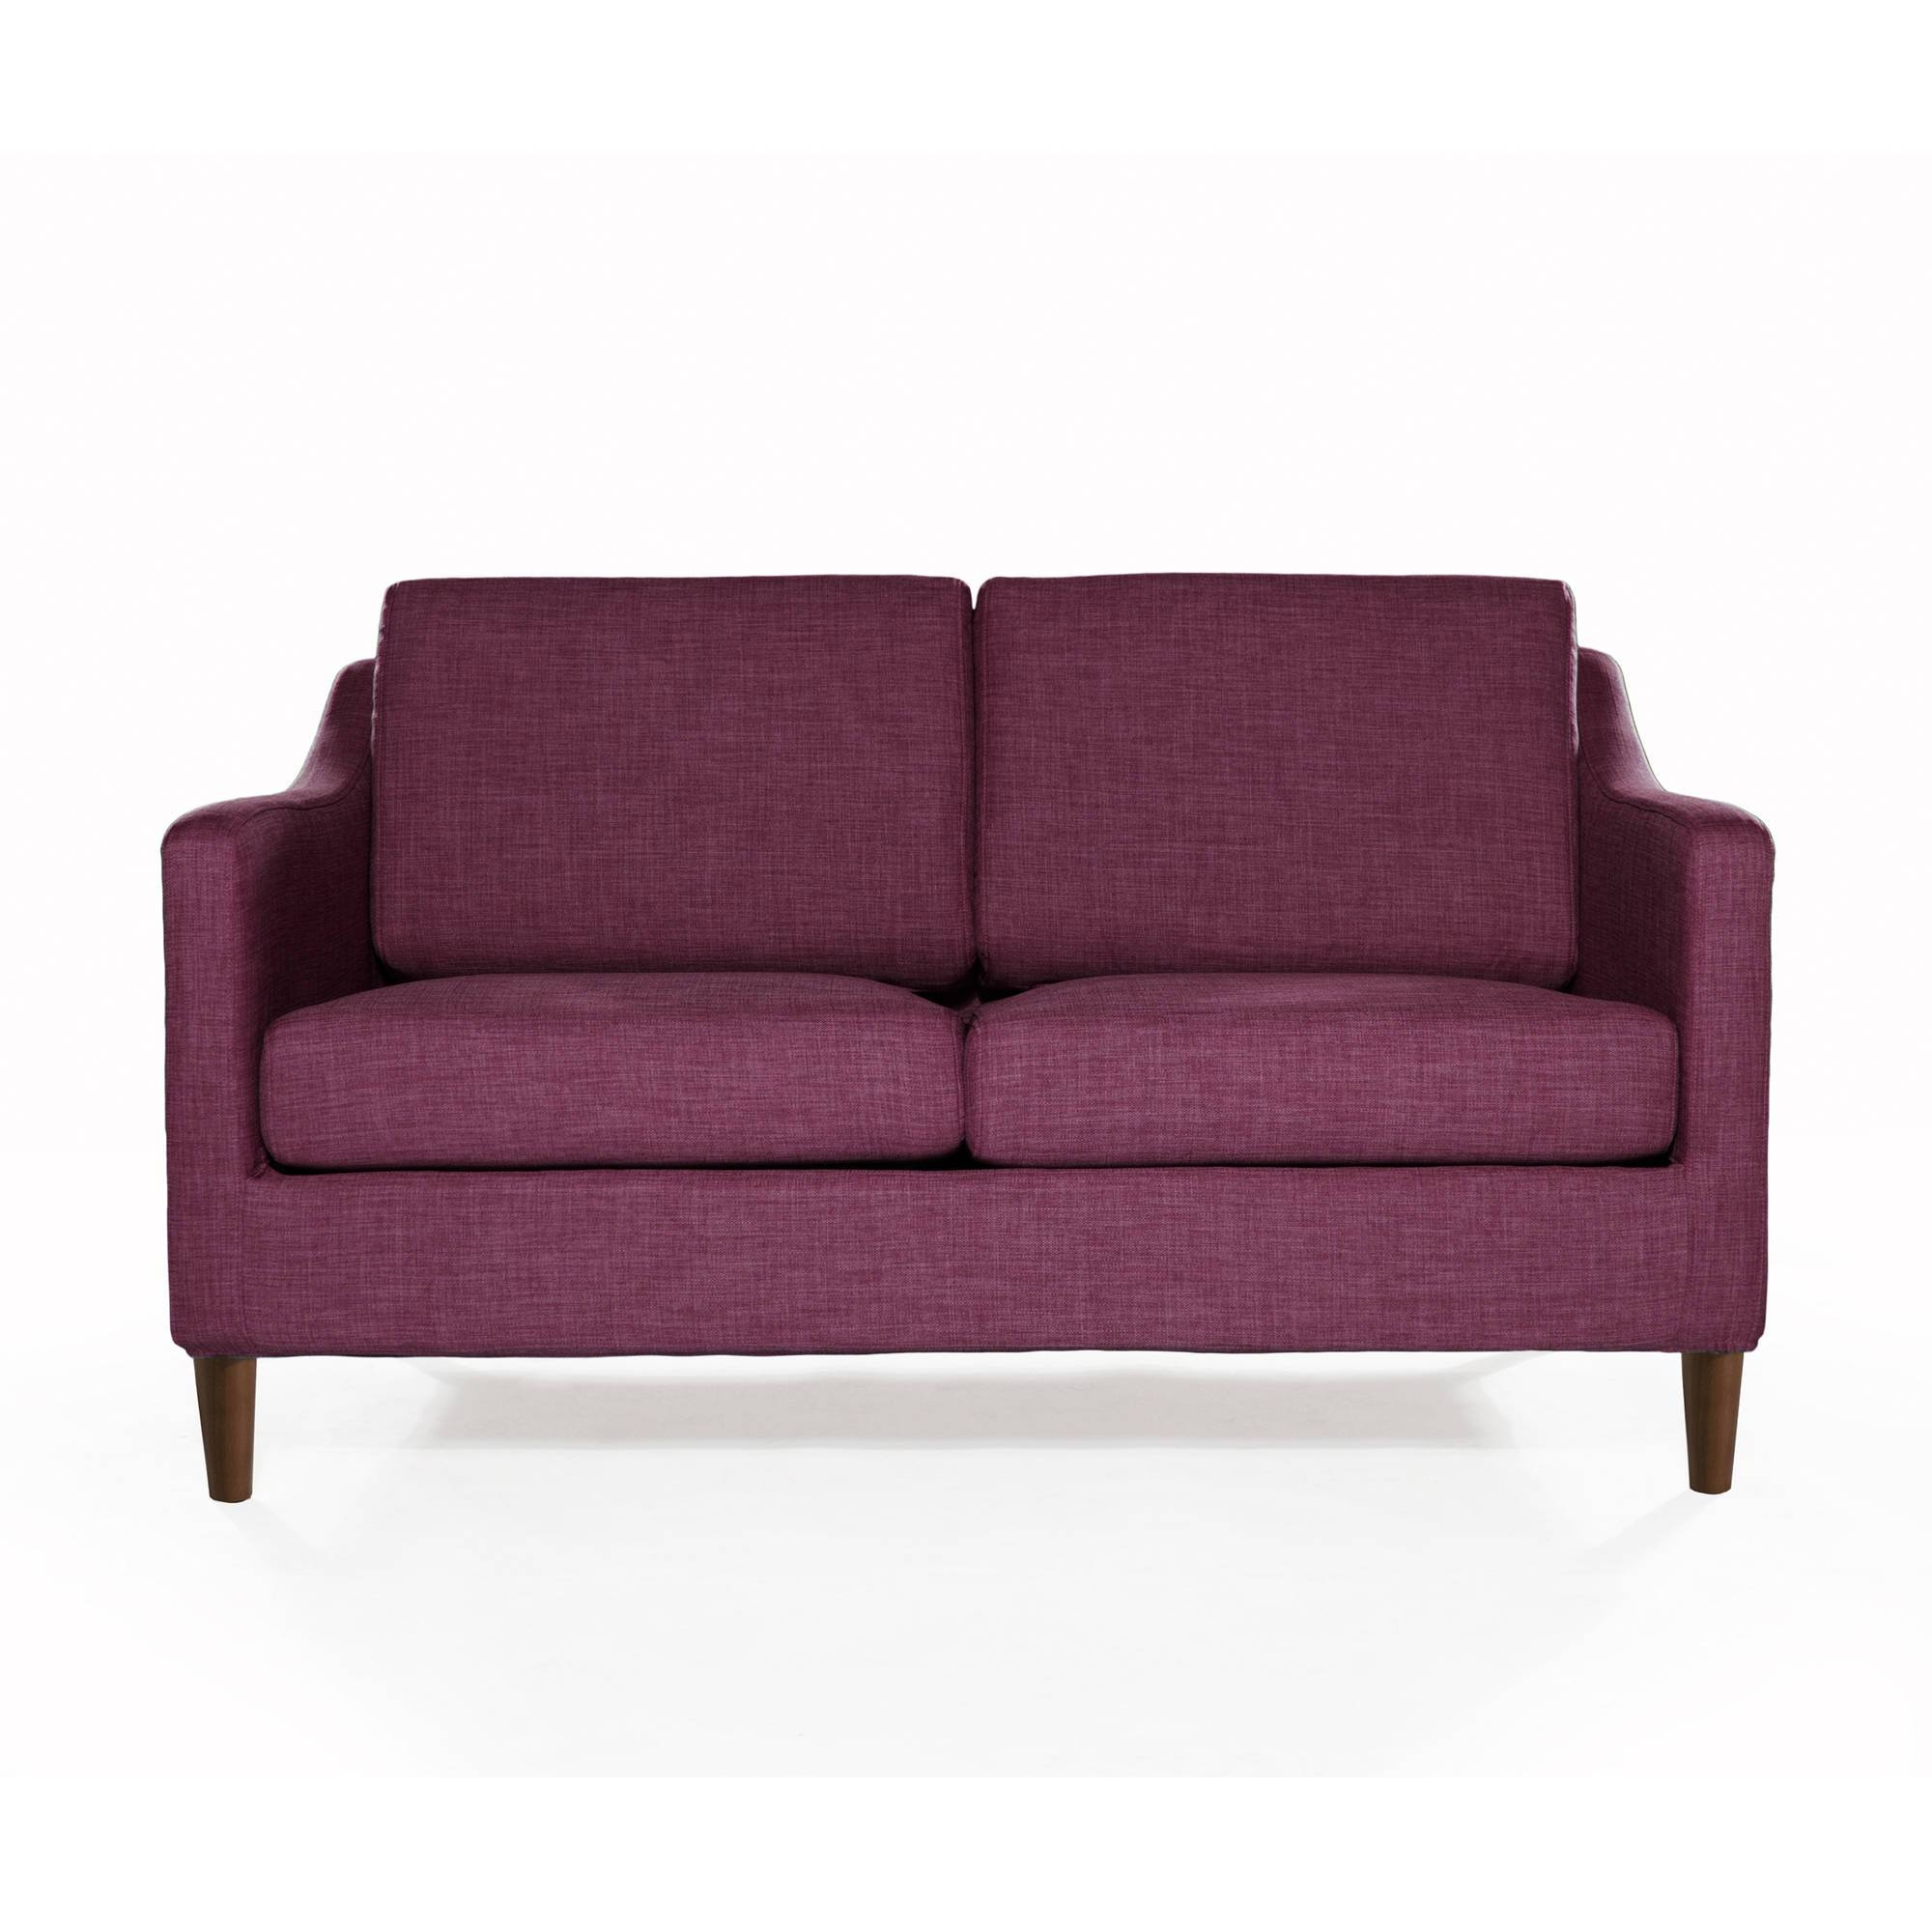 Elegant sectional sofas overstock sectional sofas for Small sectional sofa overstock